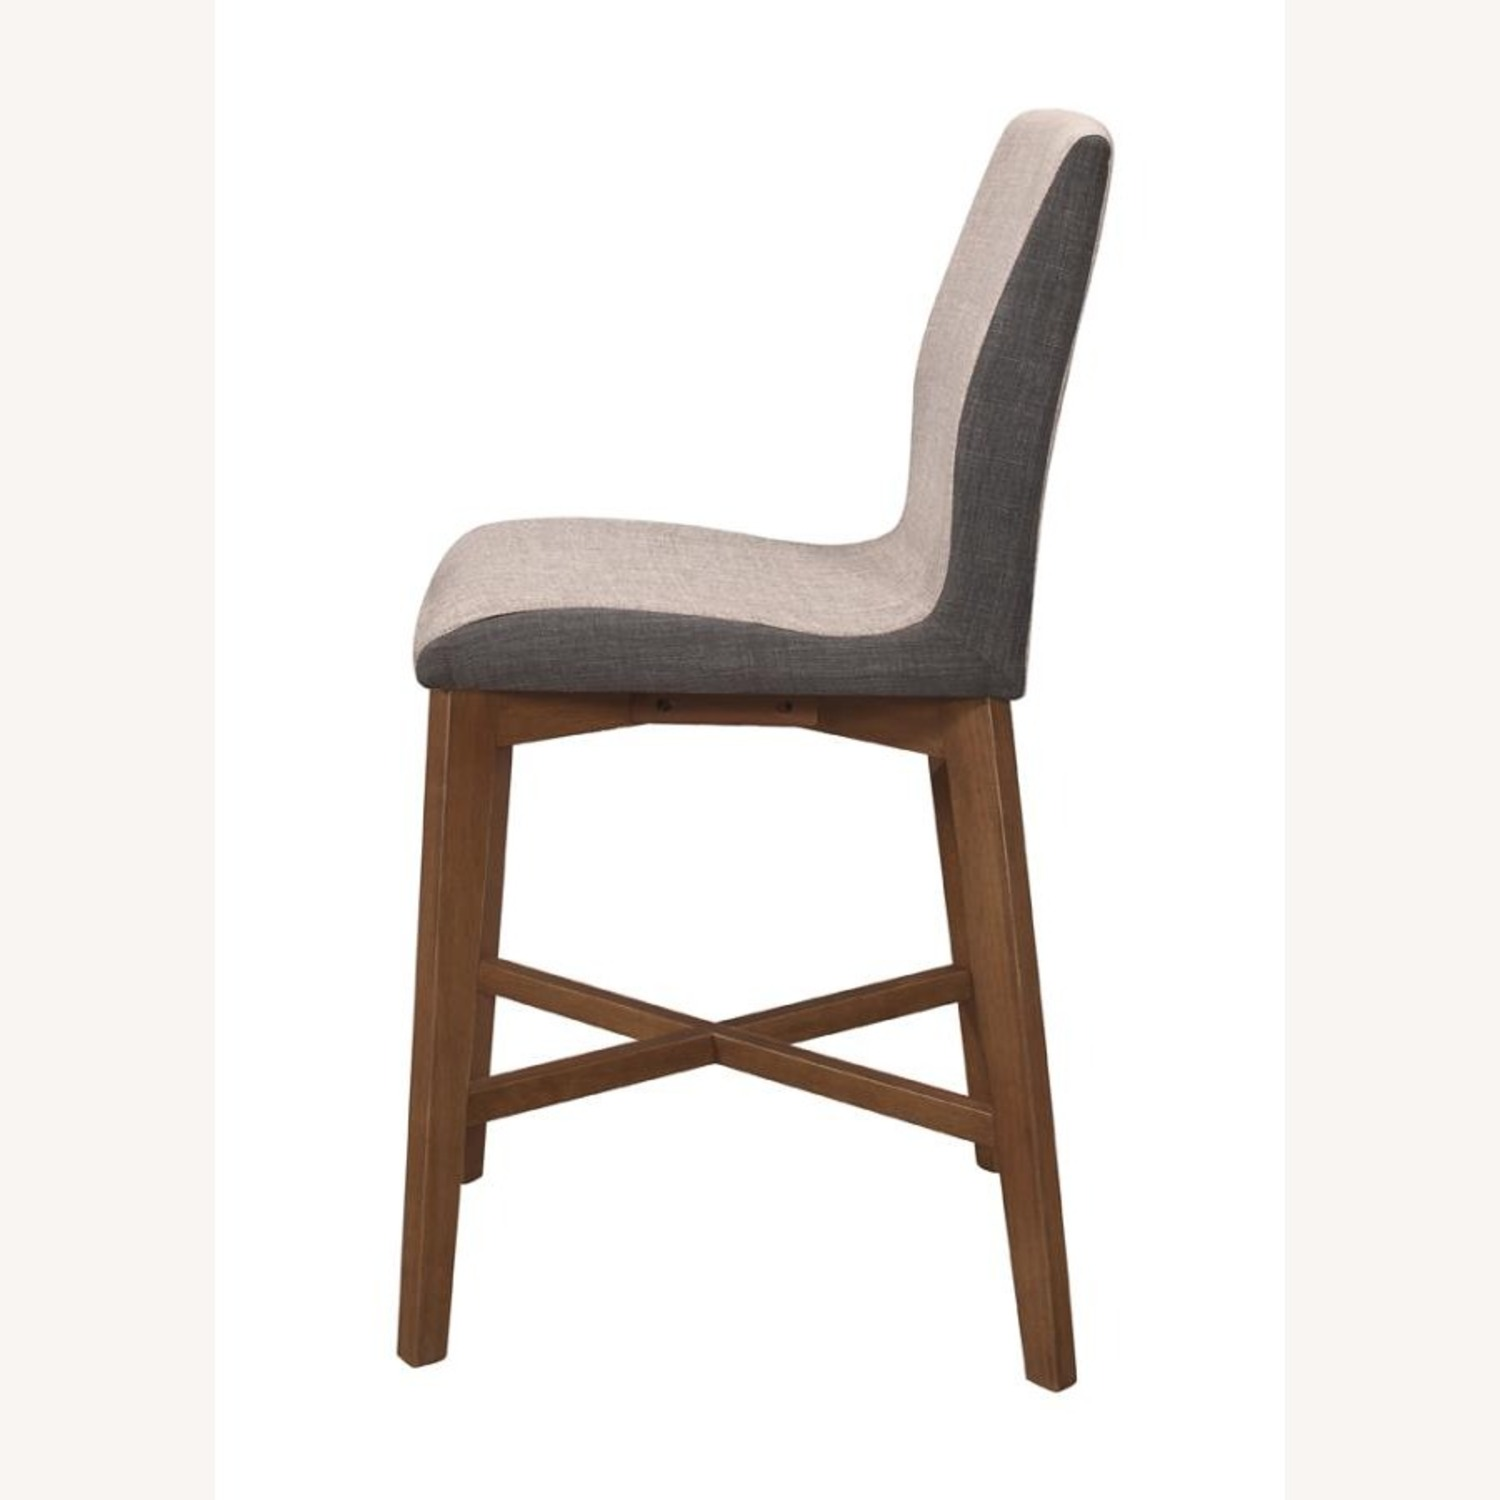 Counter Height Stool In 2-Tone Grey Fabric Finish - image-2